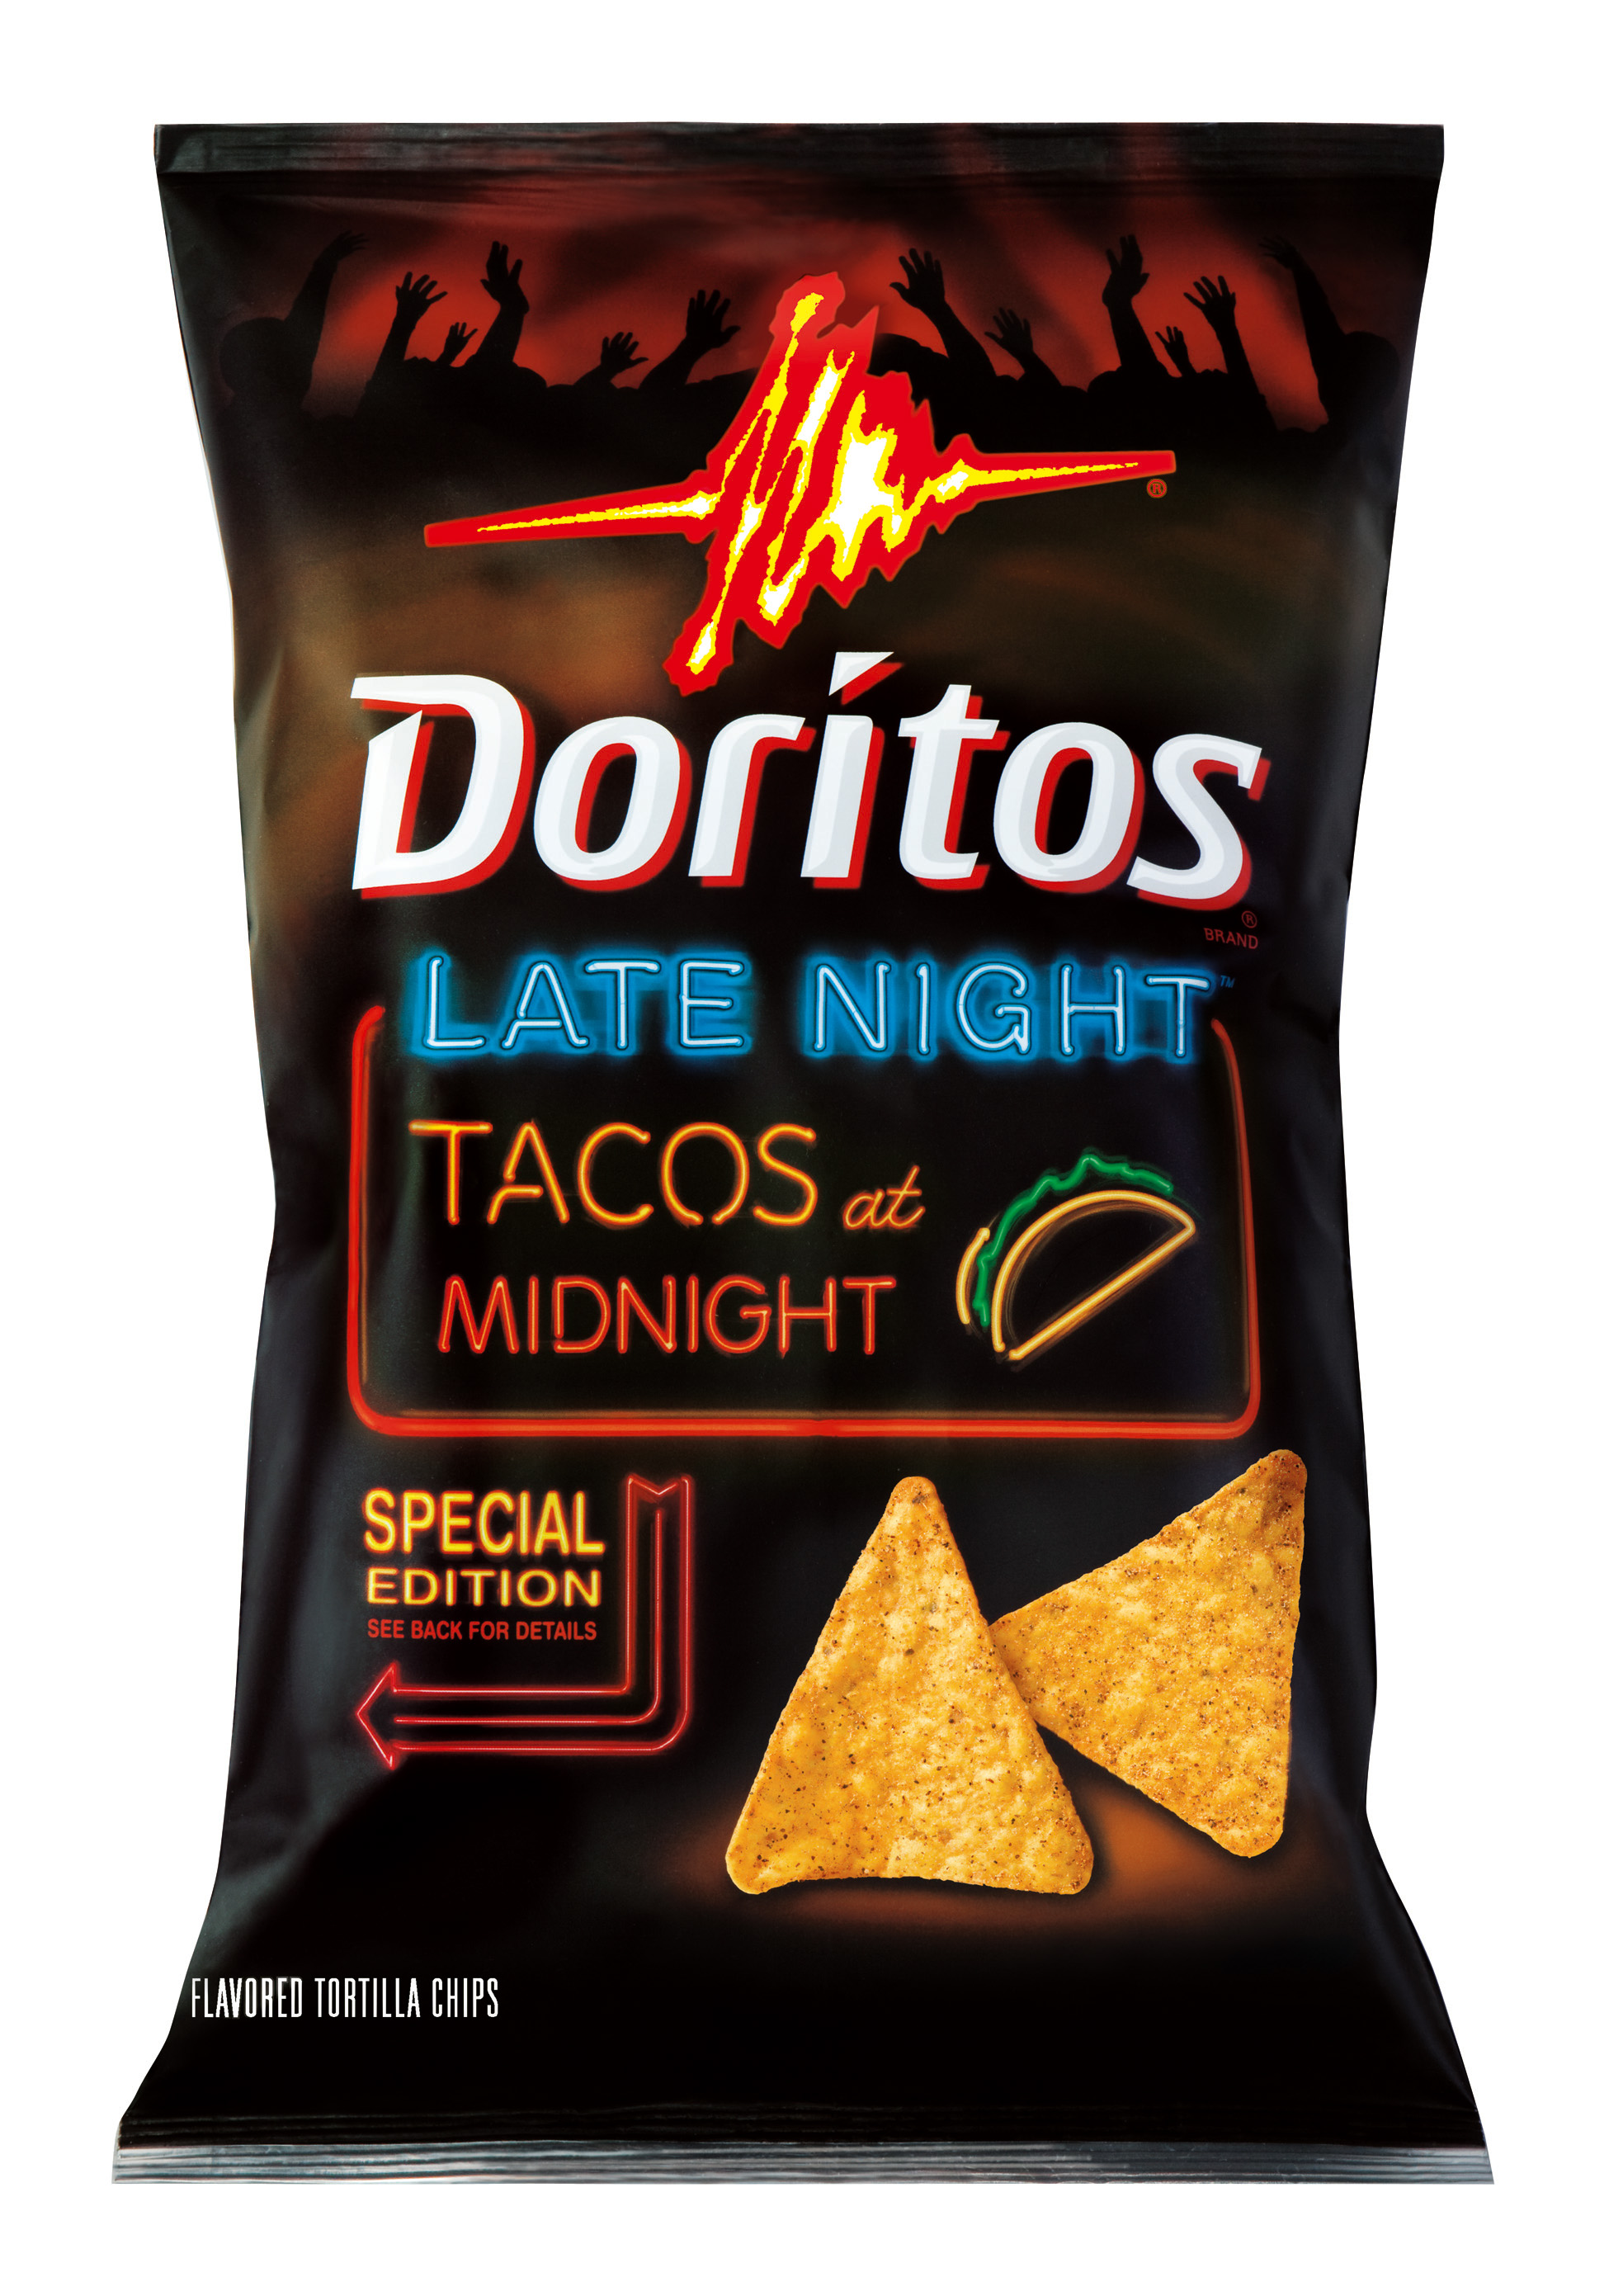 doritos breaks new ground in fusing music and technology